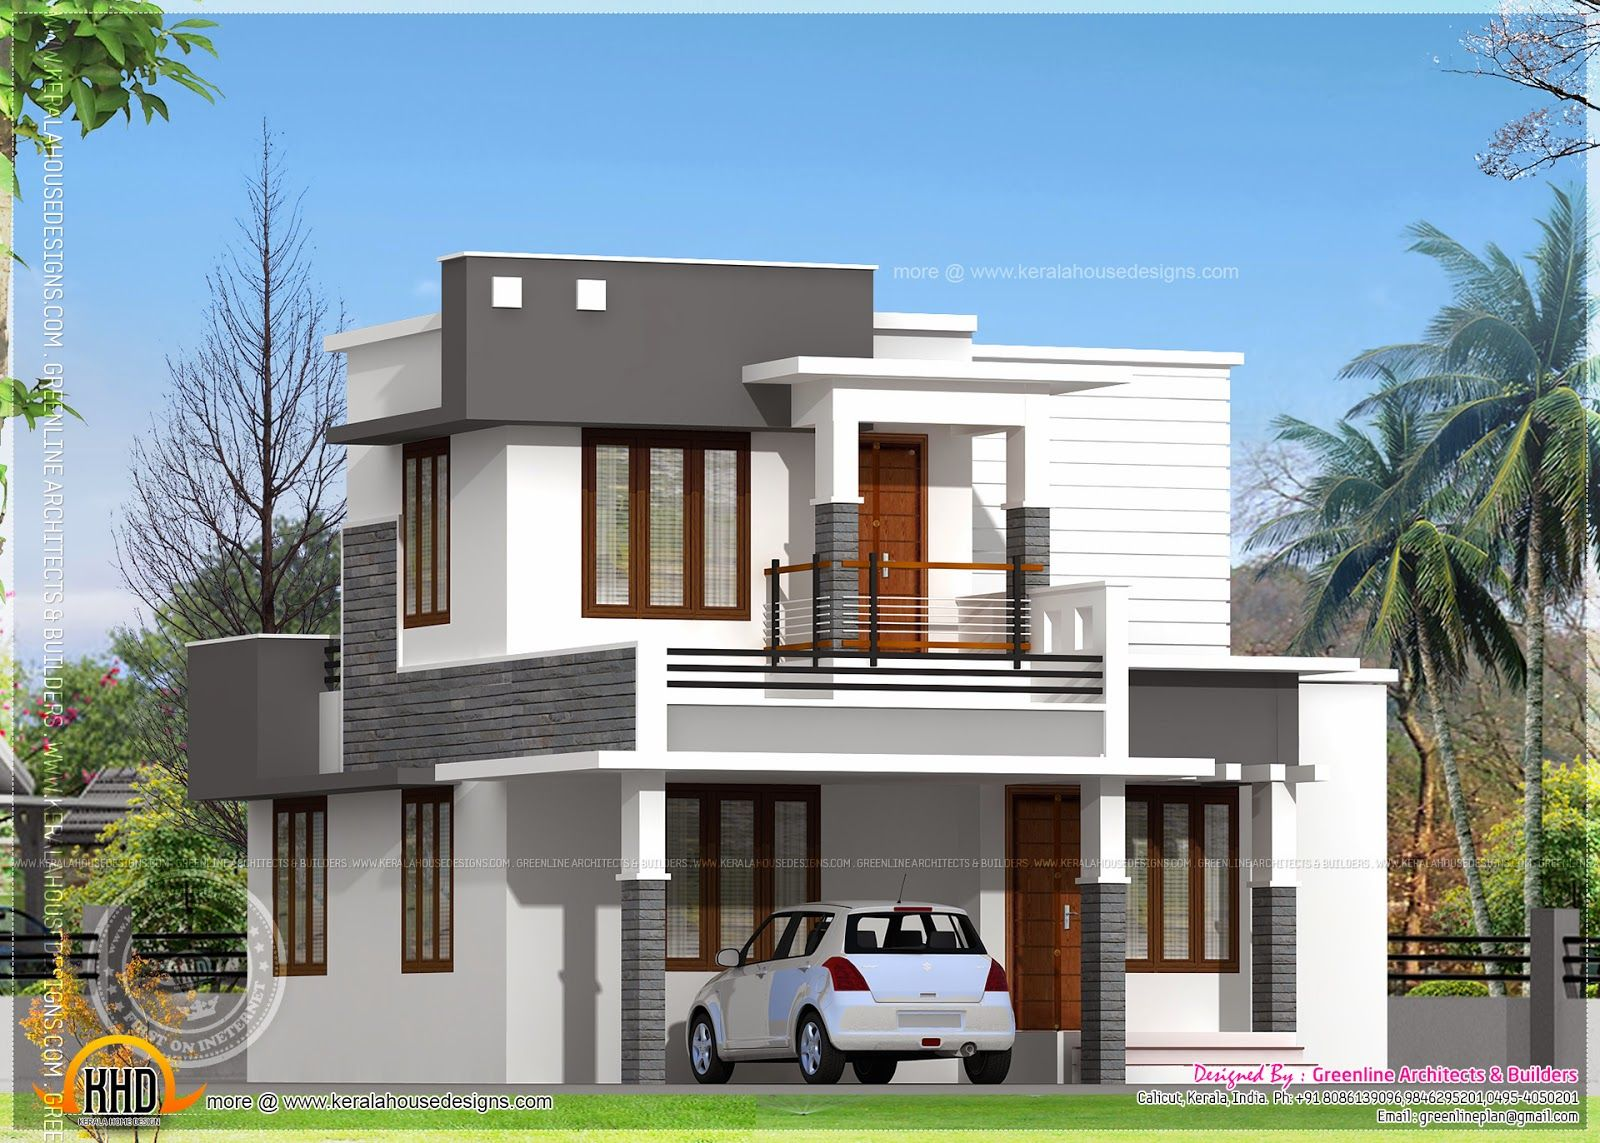 View source image flat roof houses pinterest view Good house designs in india